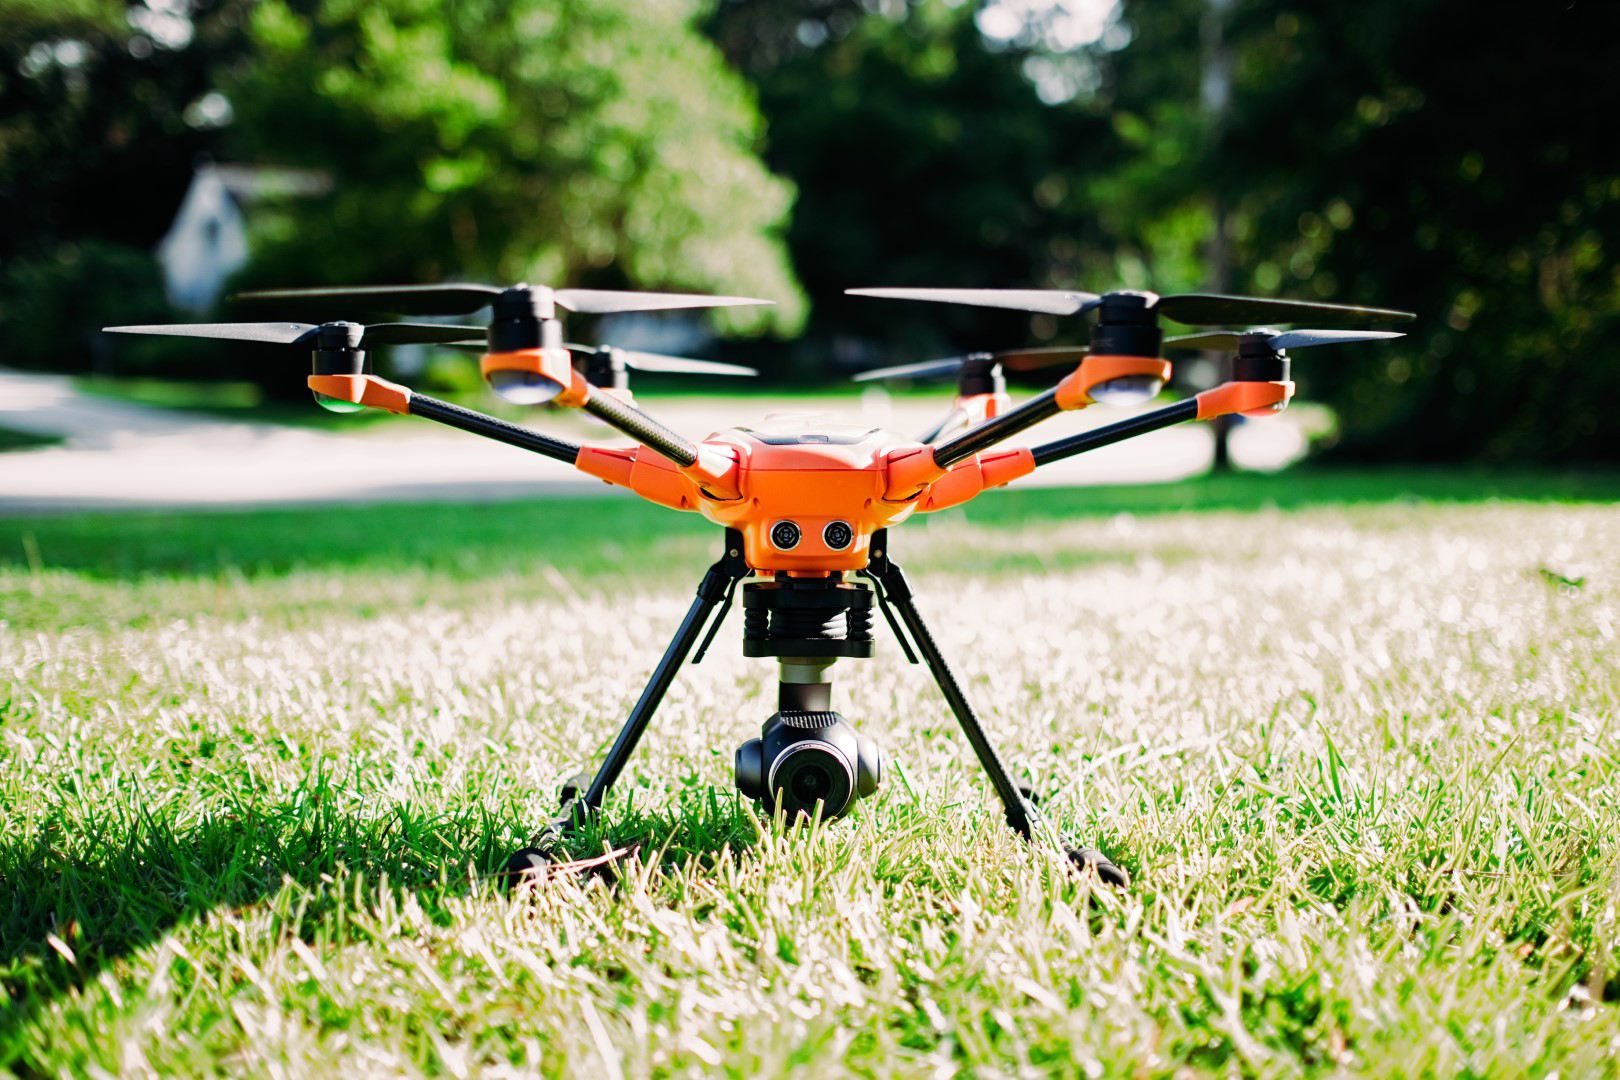 Yuneec H520 is a rugged drone for the construction industry